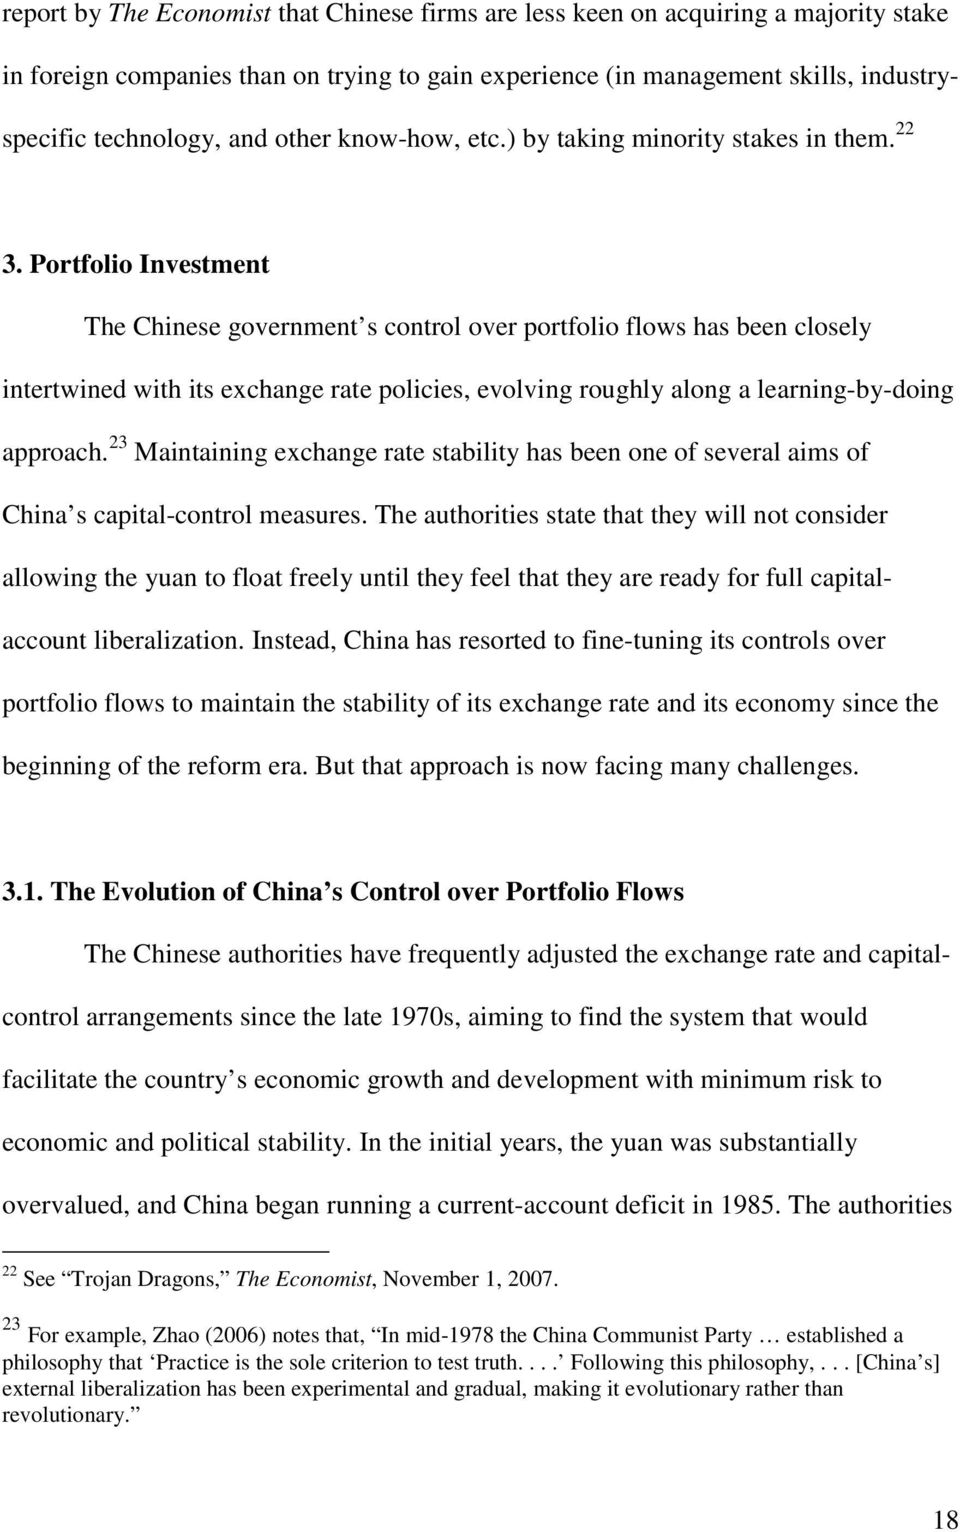 Portfolio Investment The Chinese government s control over portfolio flows has been closely intertwined with its exchange rate policies, evolving roughly along a learning-by-doing approach.